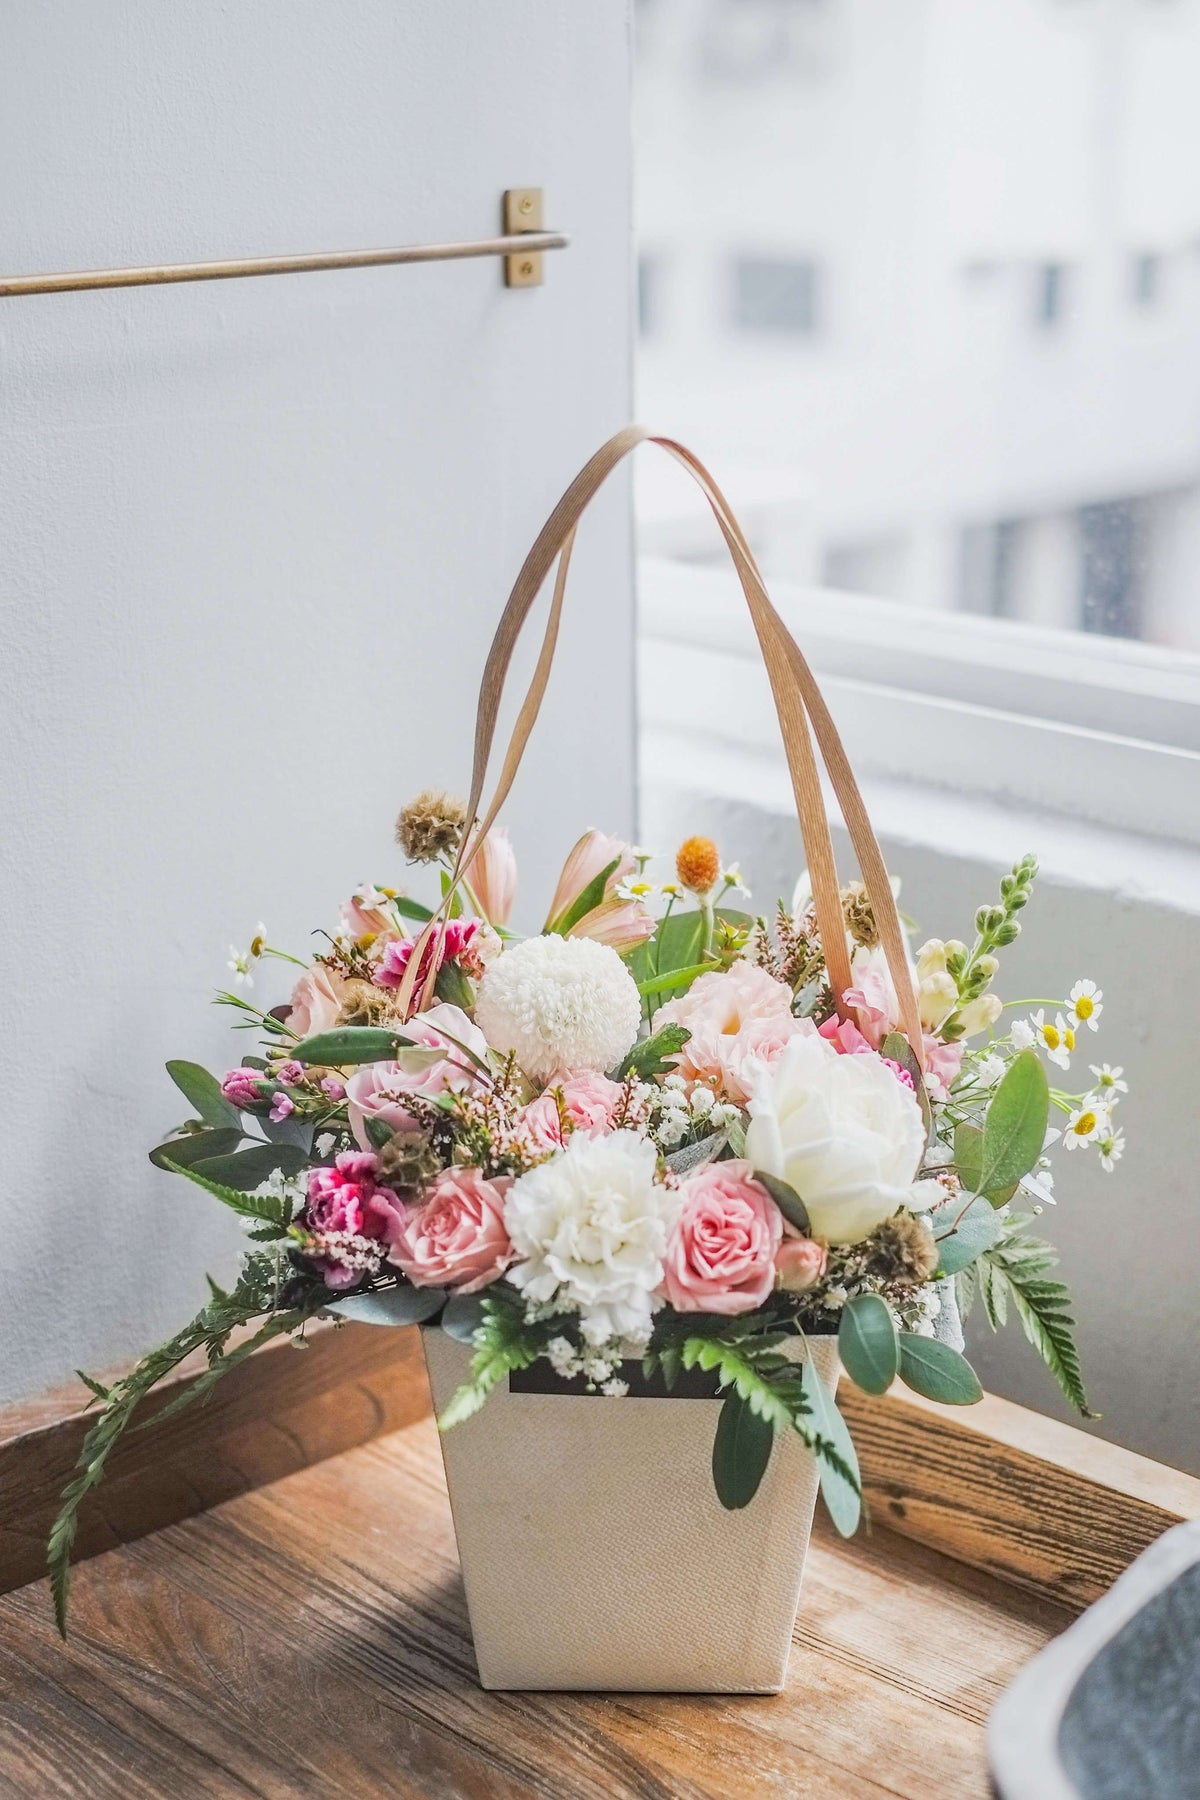 Narnia flower box hello flowers crafted bouquets online delivery narnia hello flowers izmirmasajfo